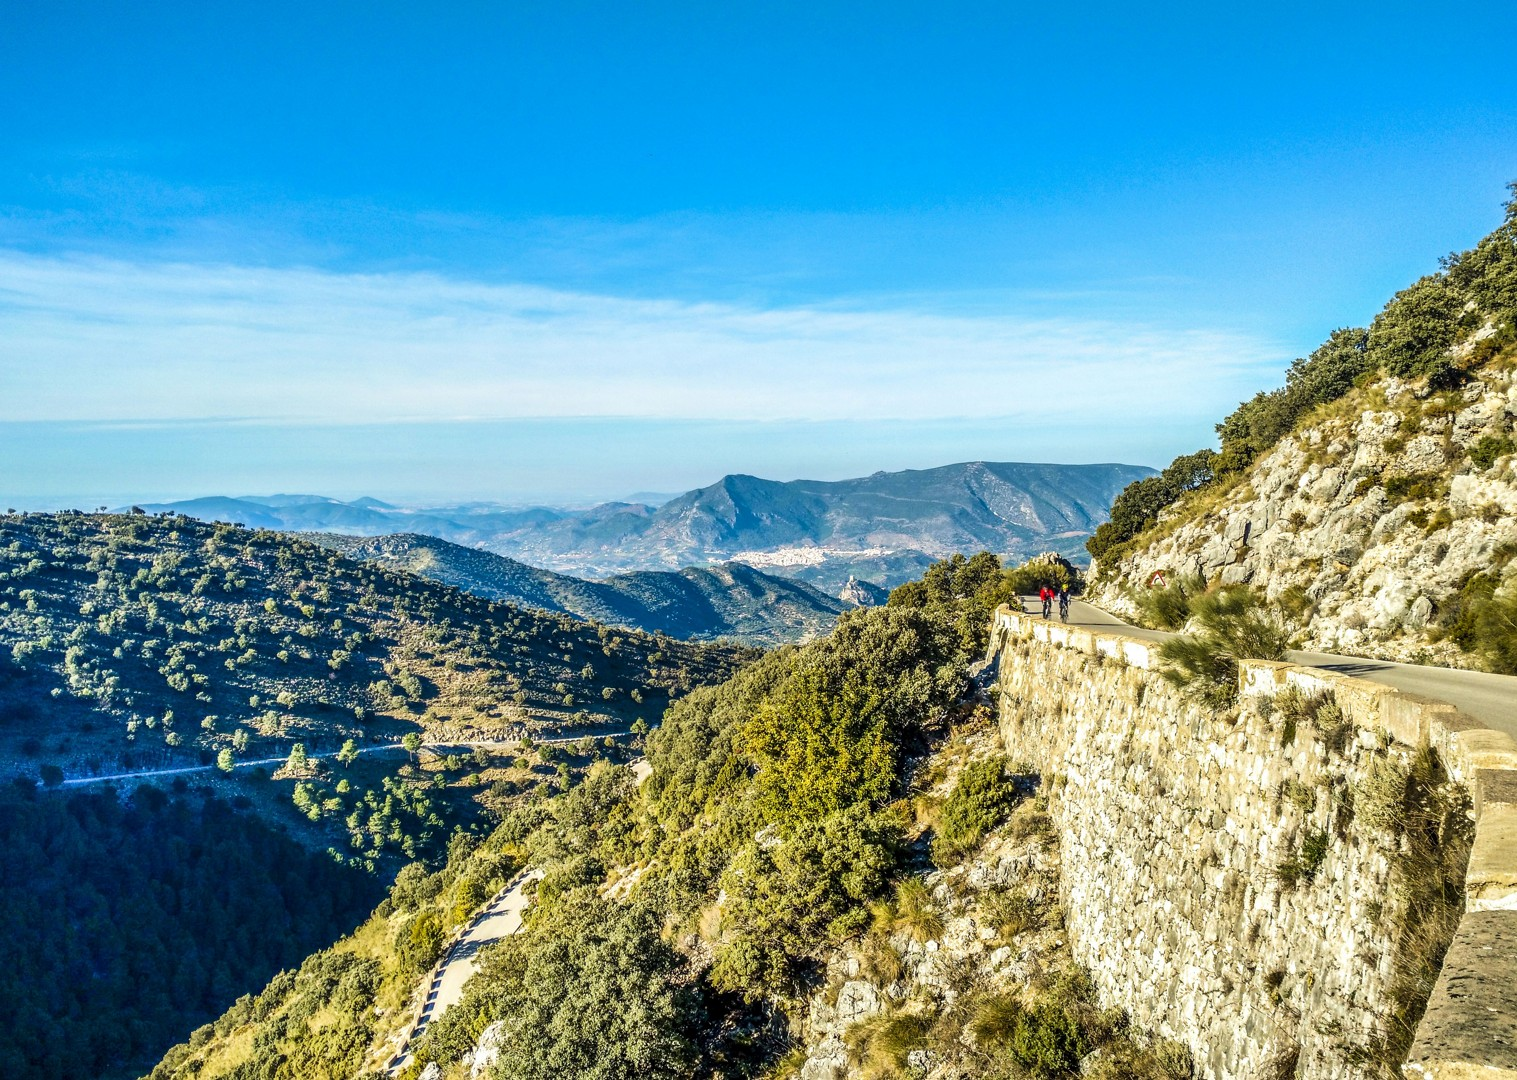 spanish-mountains-guided-road-cycling-tour-fun-group.jpg - Southern Spain - Andalucia - Los Pueblos Blancos - Guided Road Cycling Holiday - Road Cycling